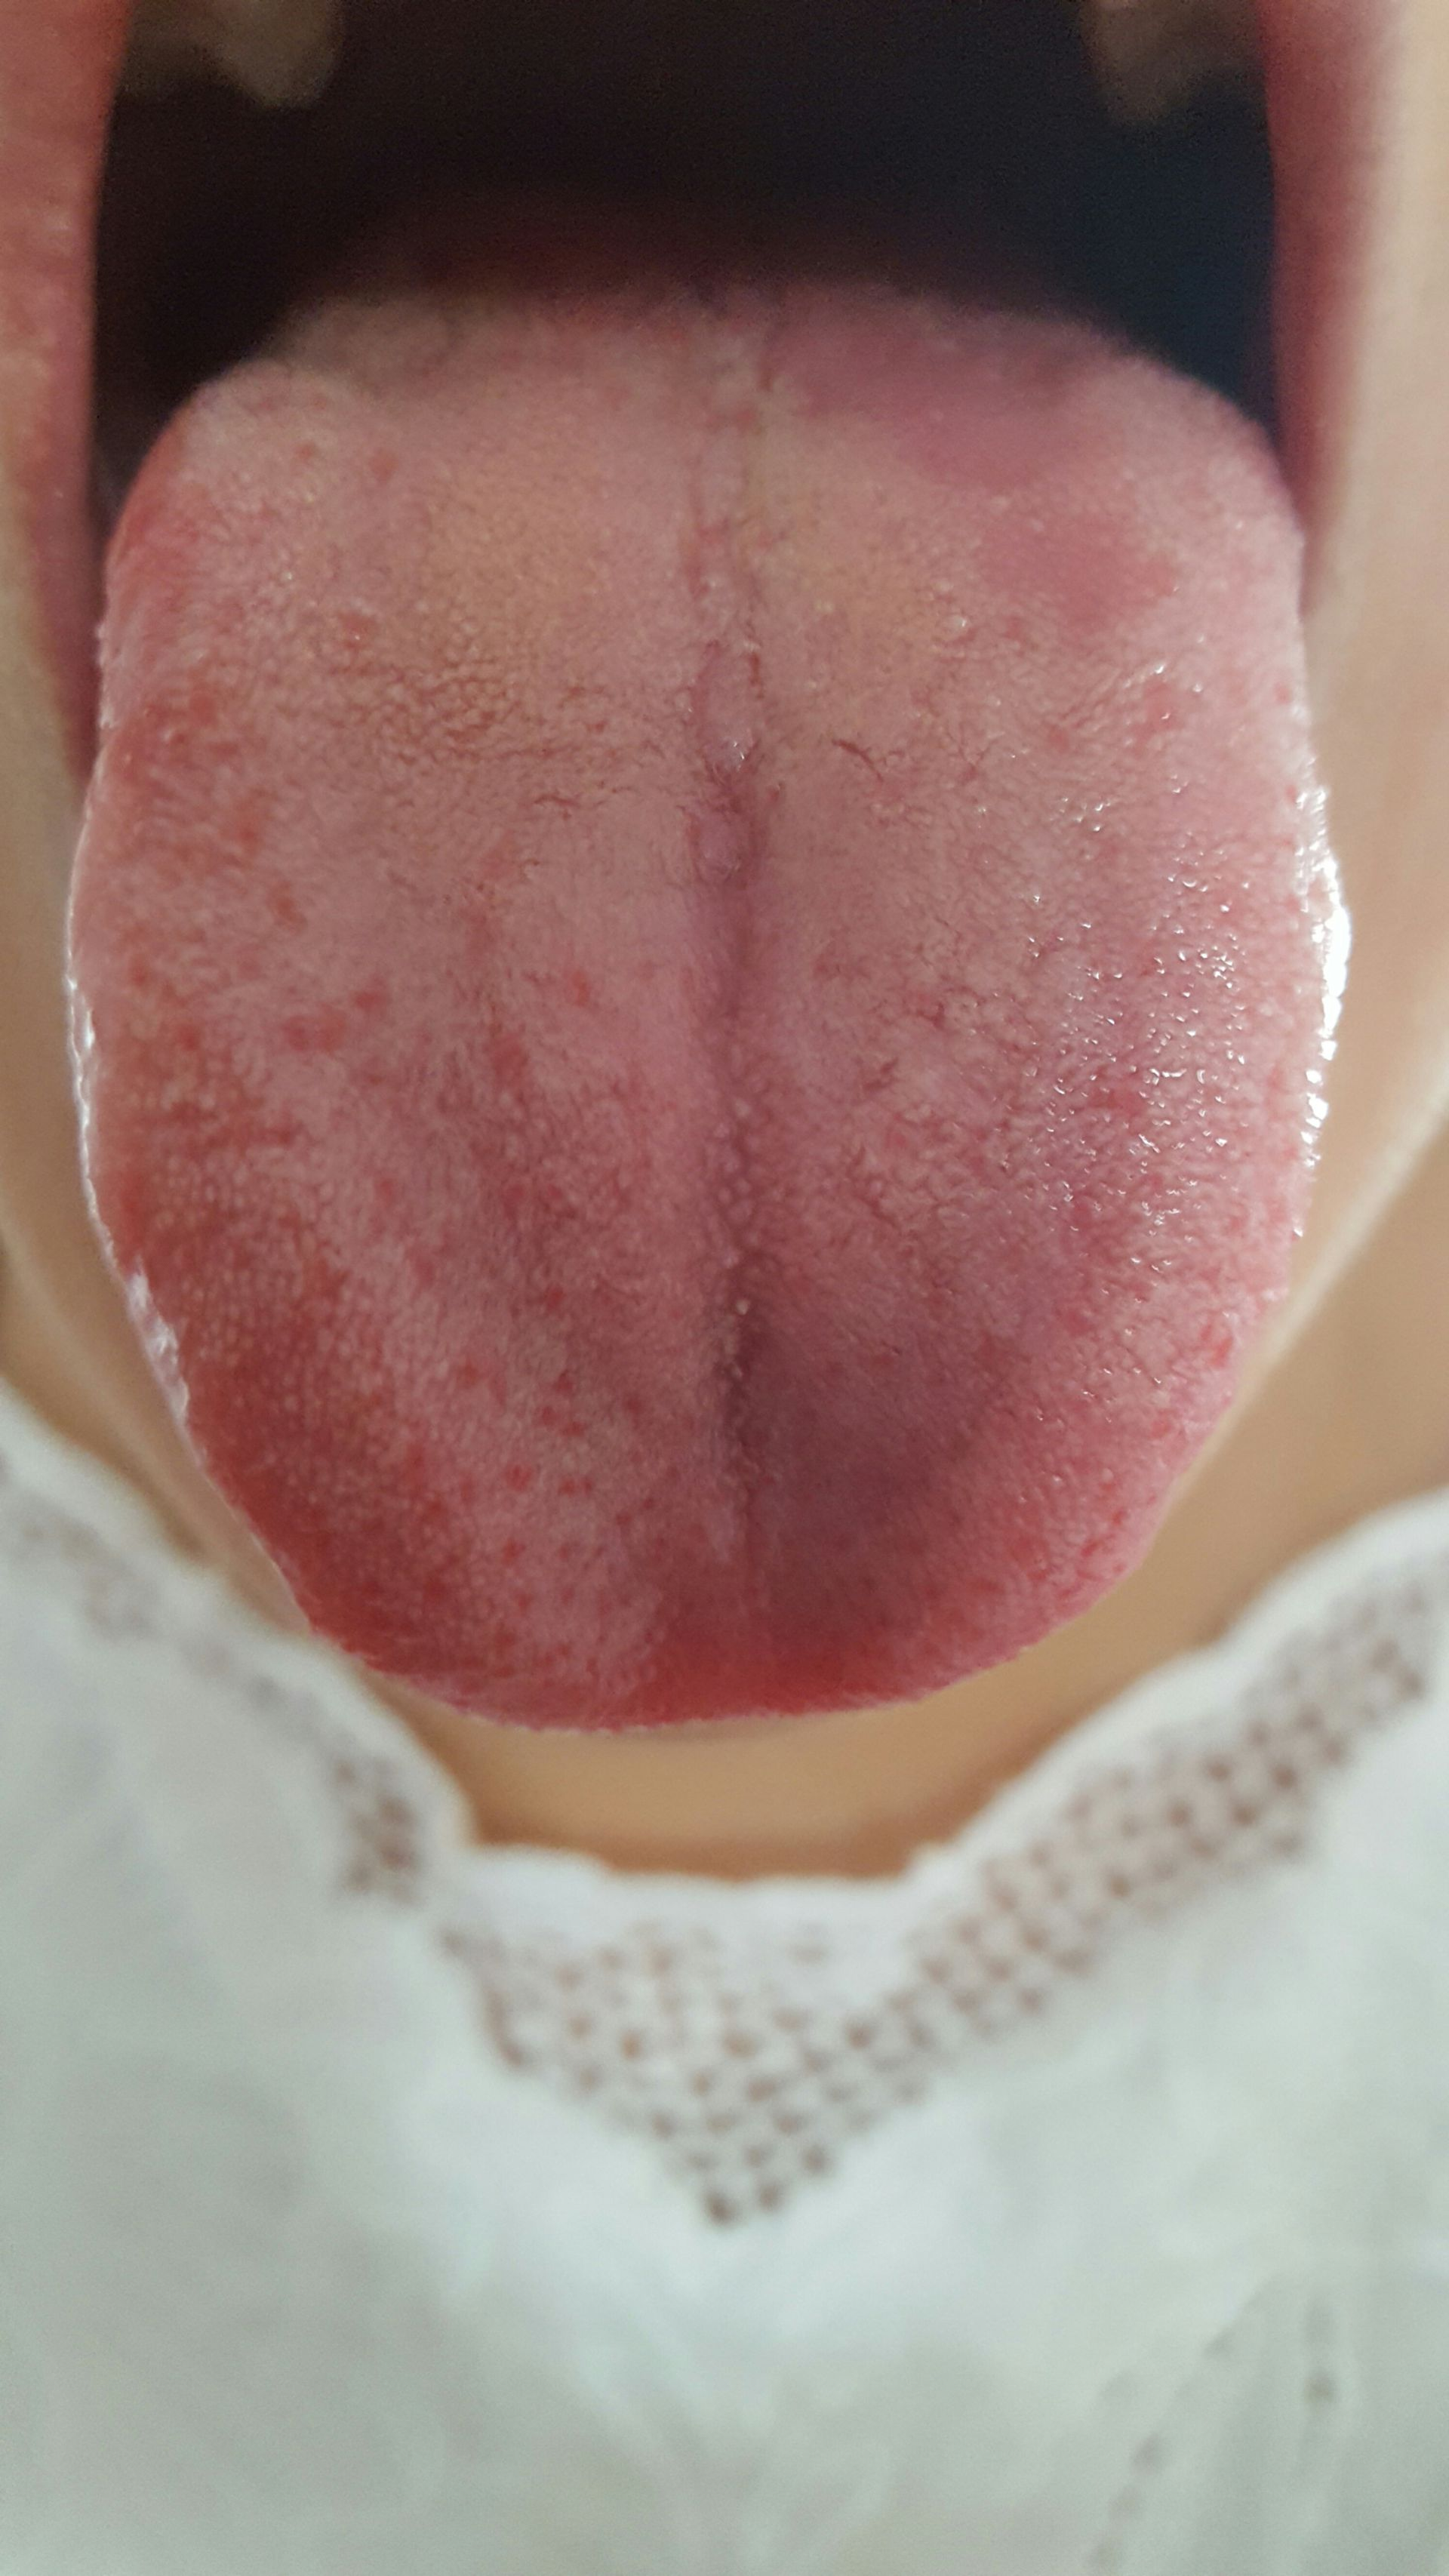 Tongue of female patient